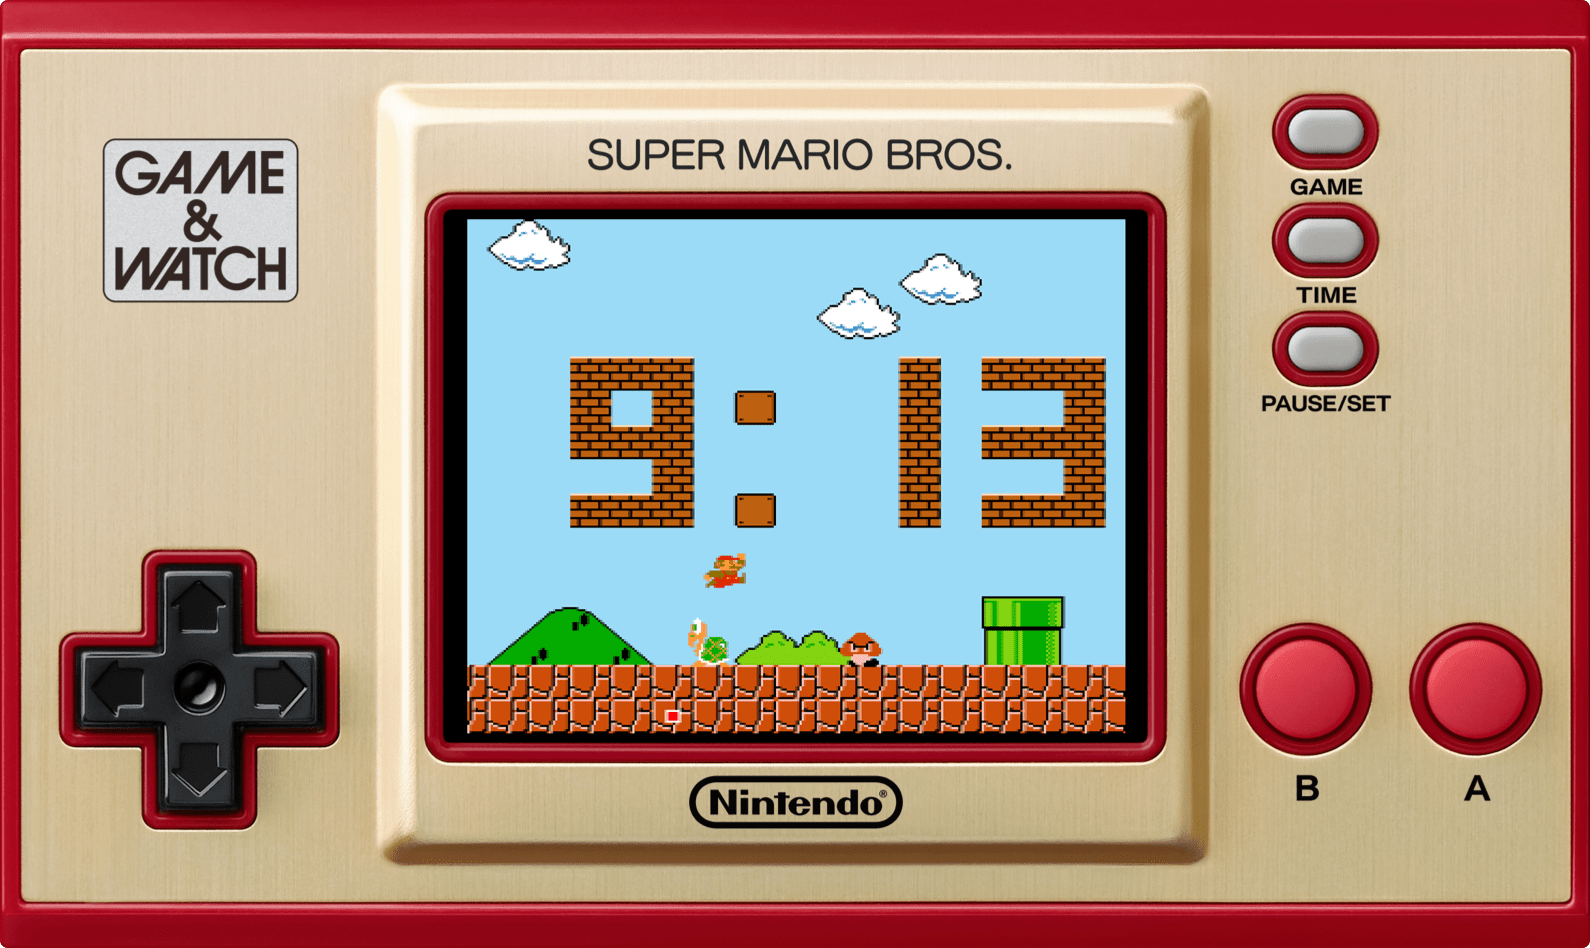 Game and Watch Super Mario Bros. image